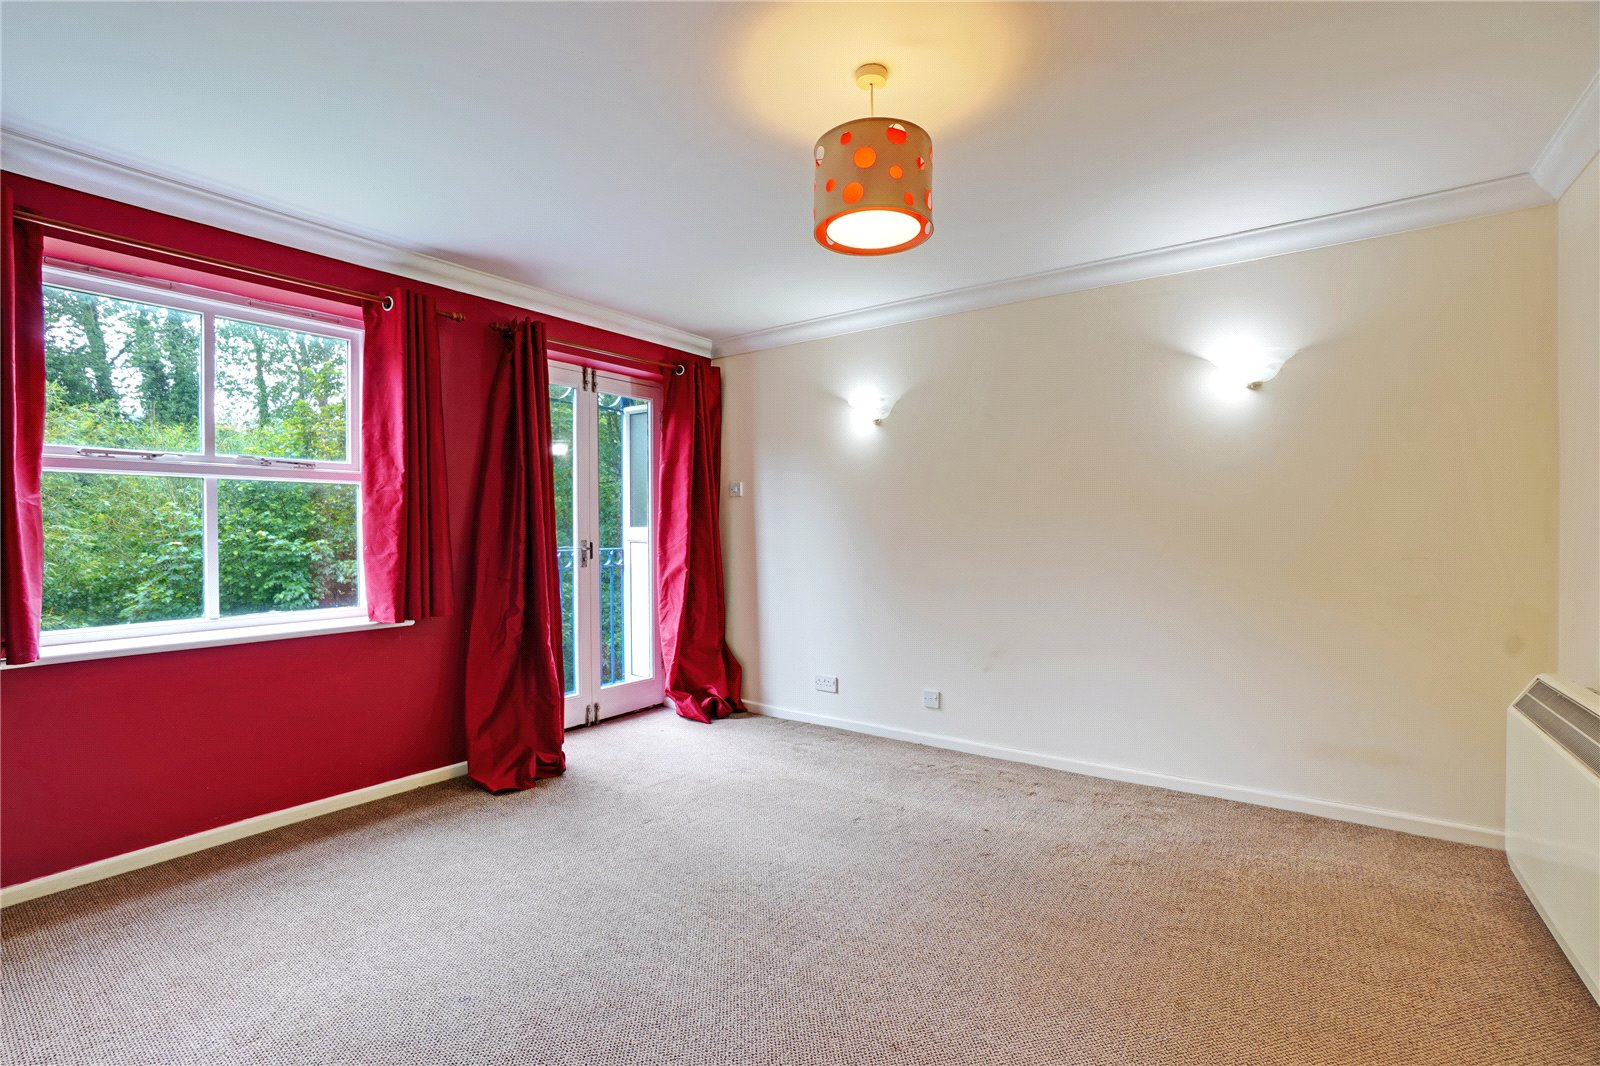 2 bed apartment for sale in River Bank Close, Maidstone, ME15